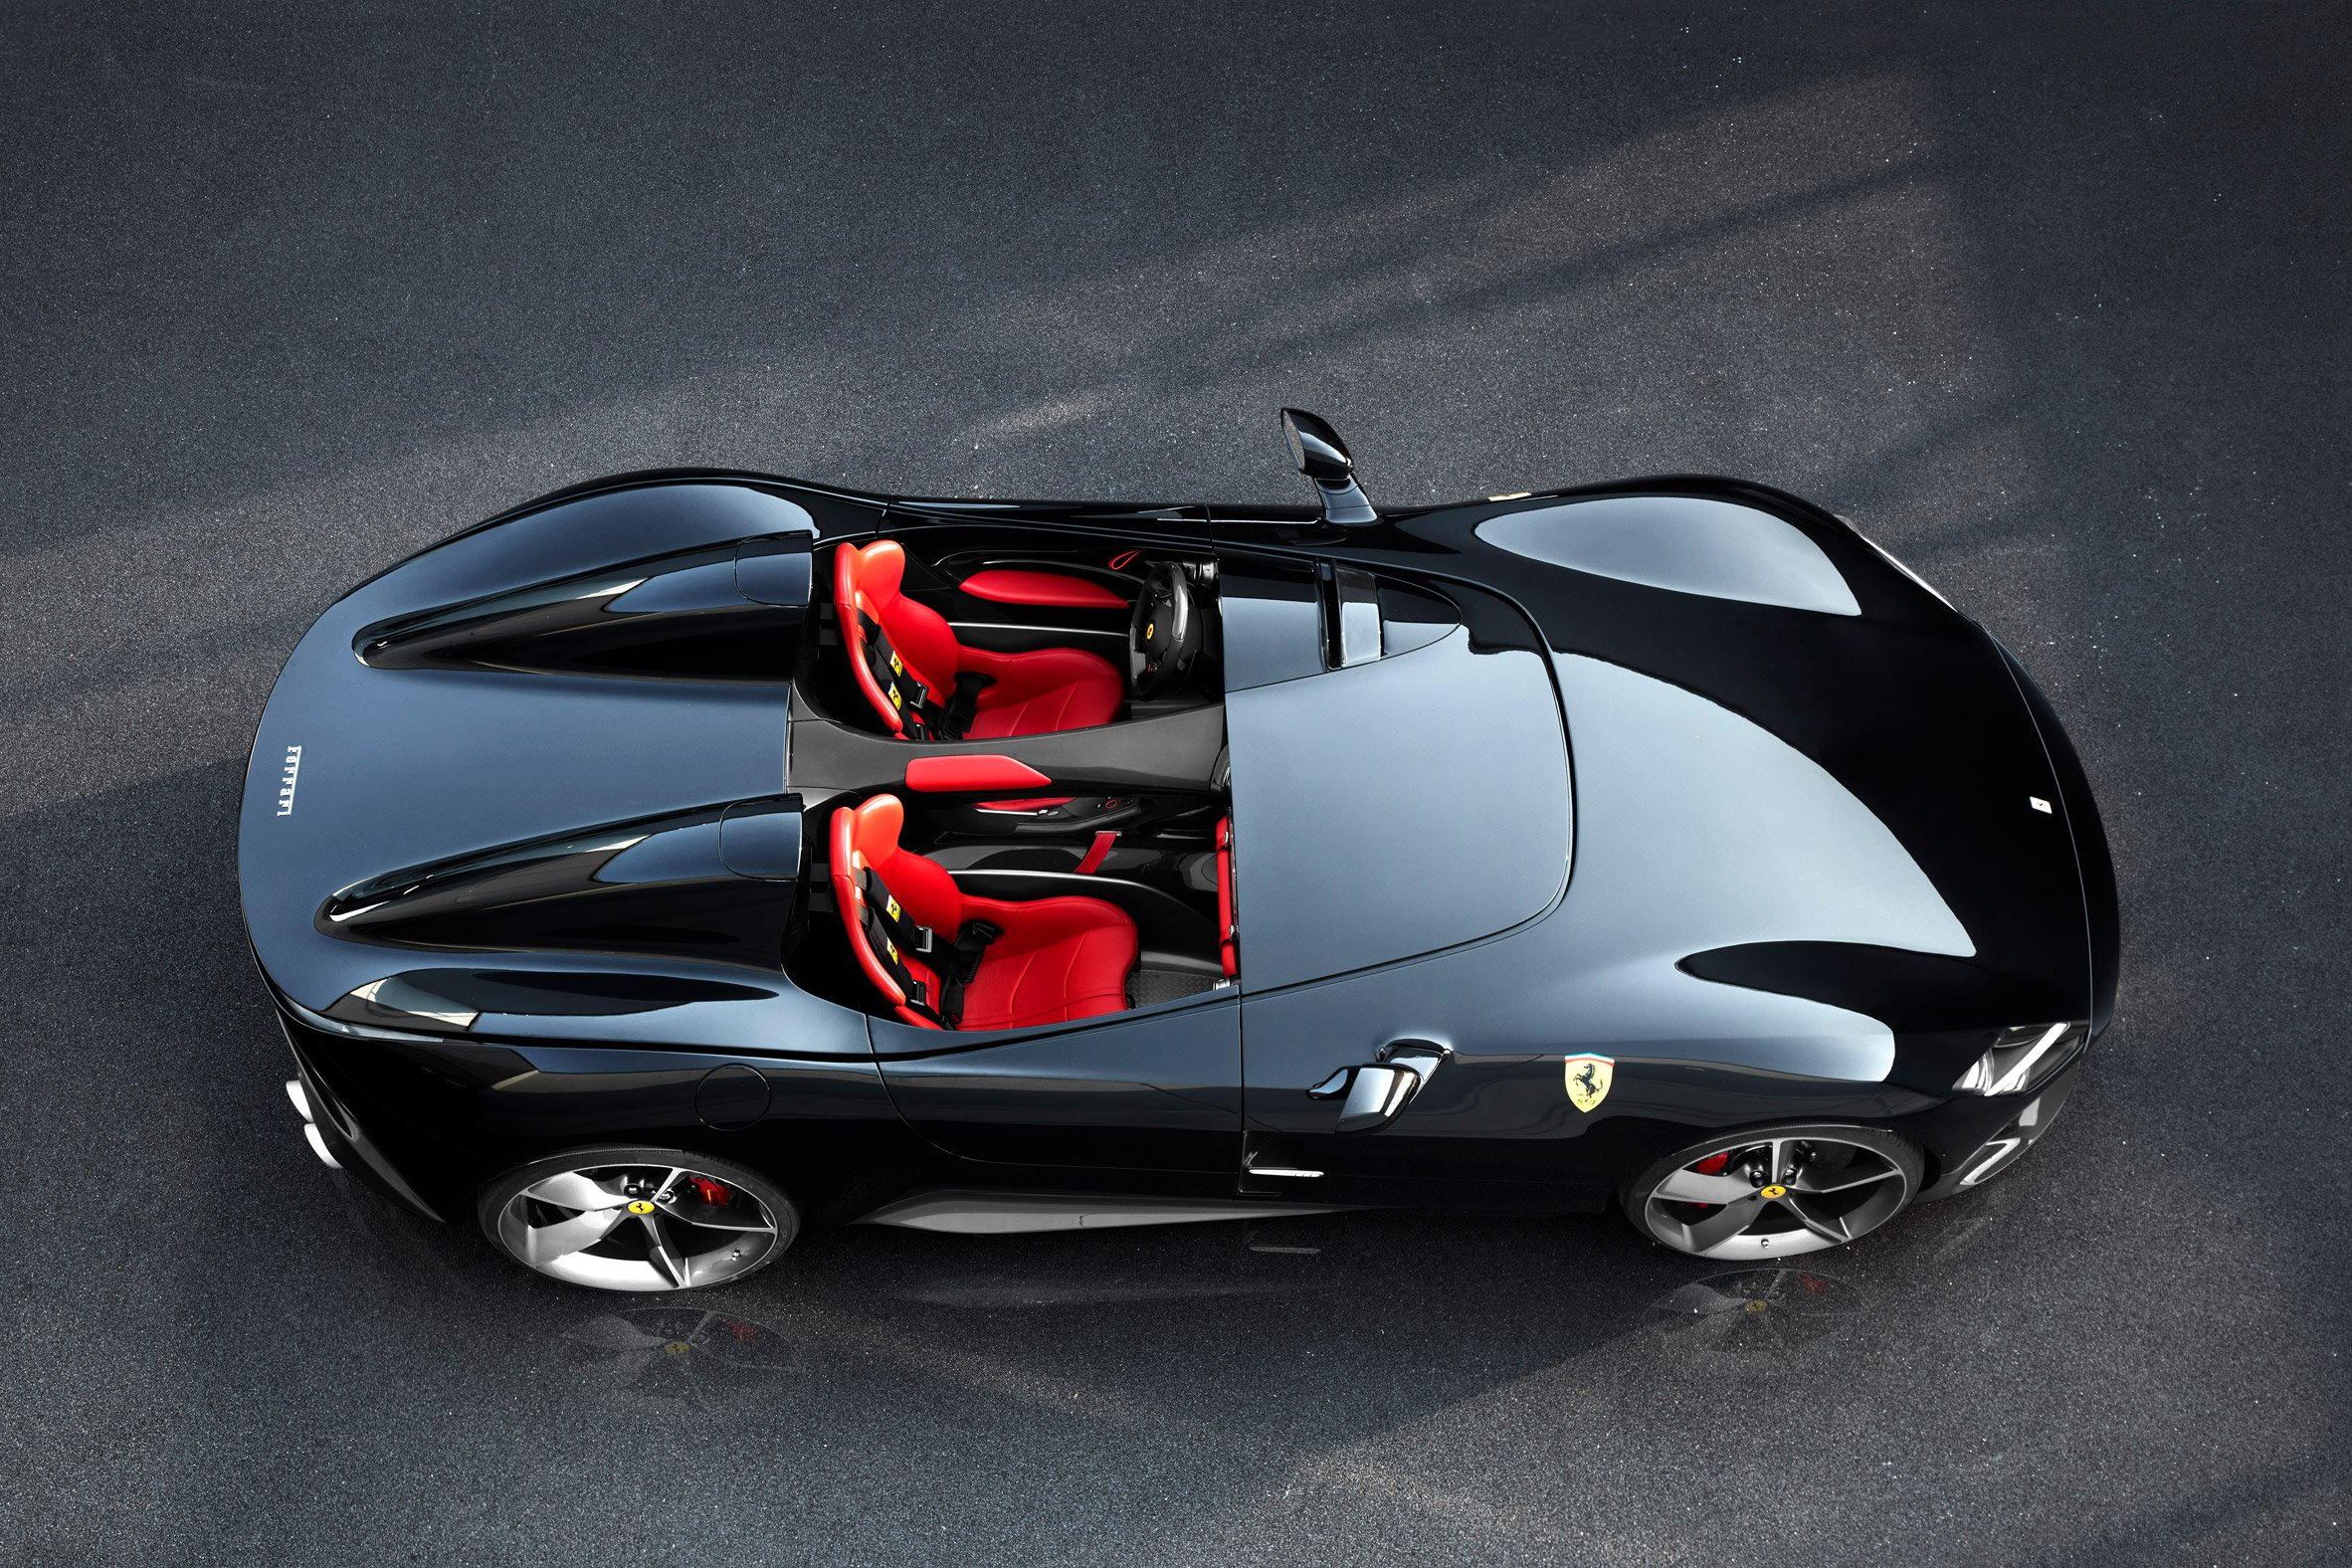 Ferrari's Monza SP1 and SP2 sports cars have no windshield or roof